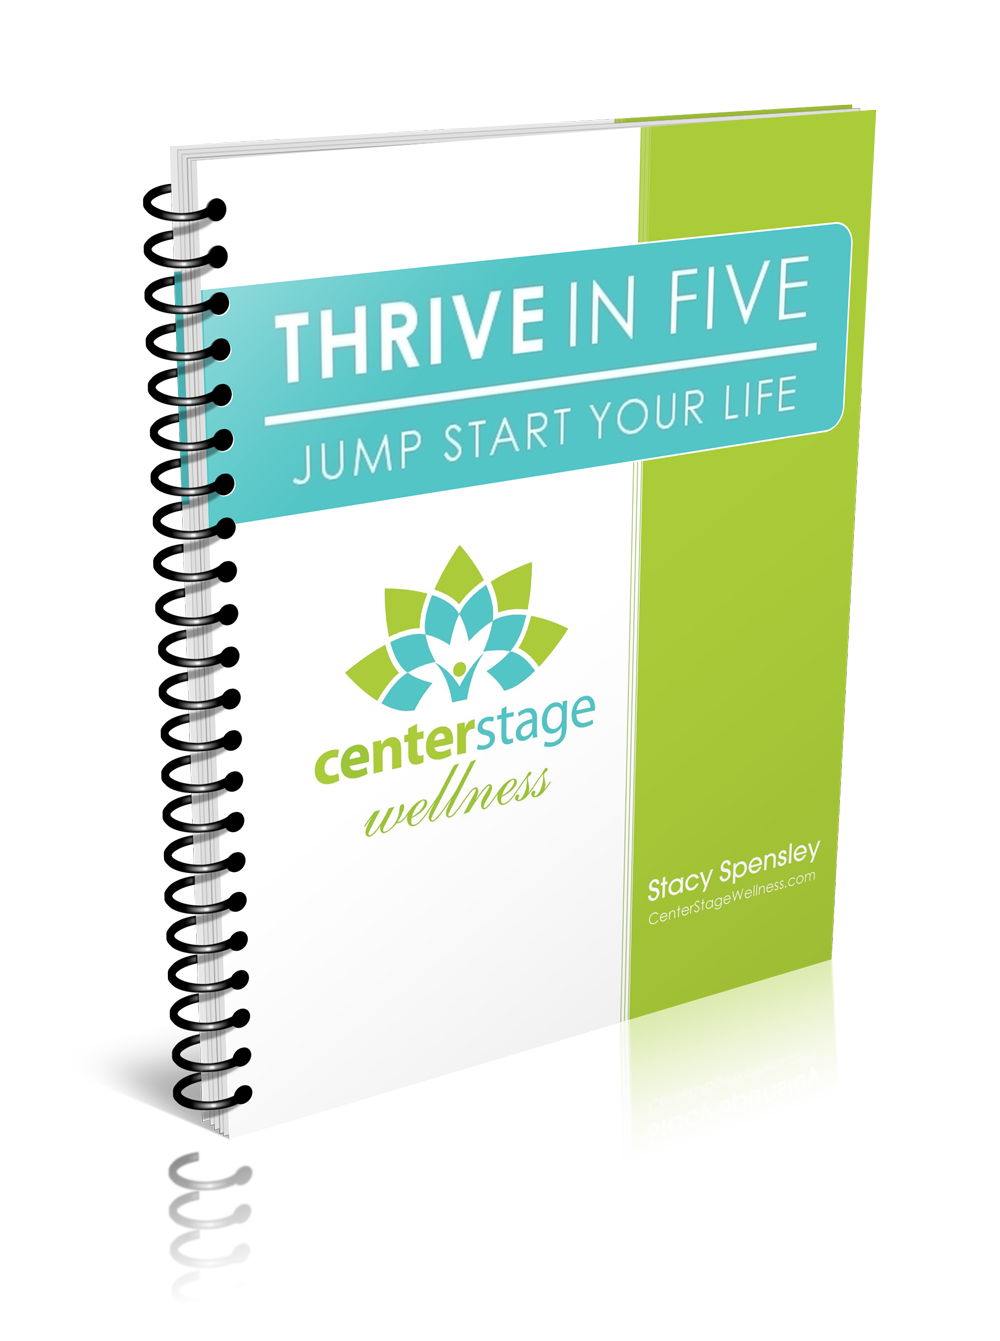 Thrive in Five: Jumpstart Your Life